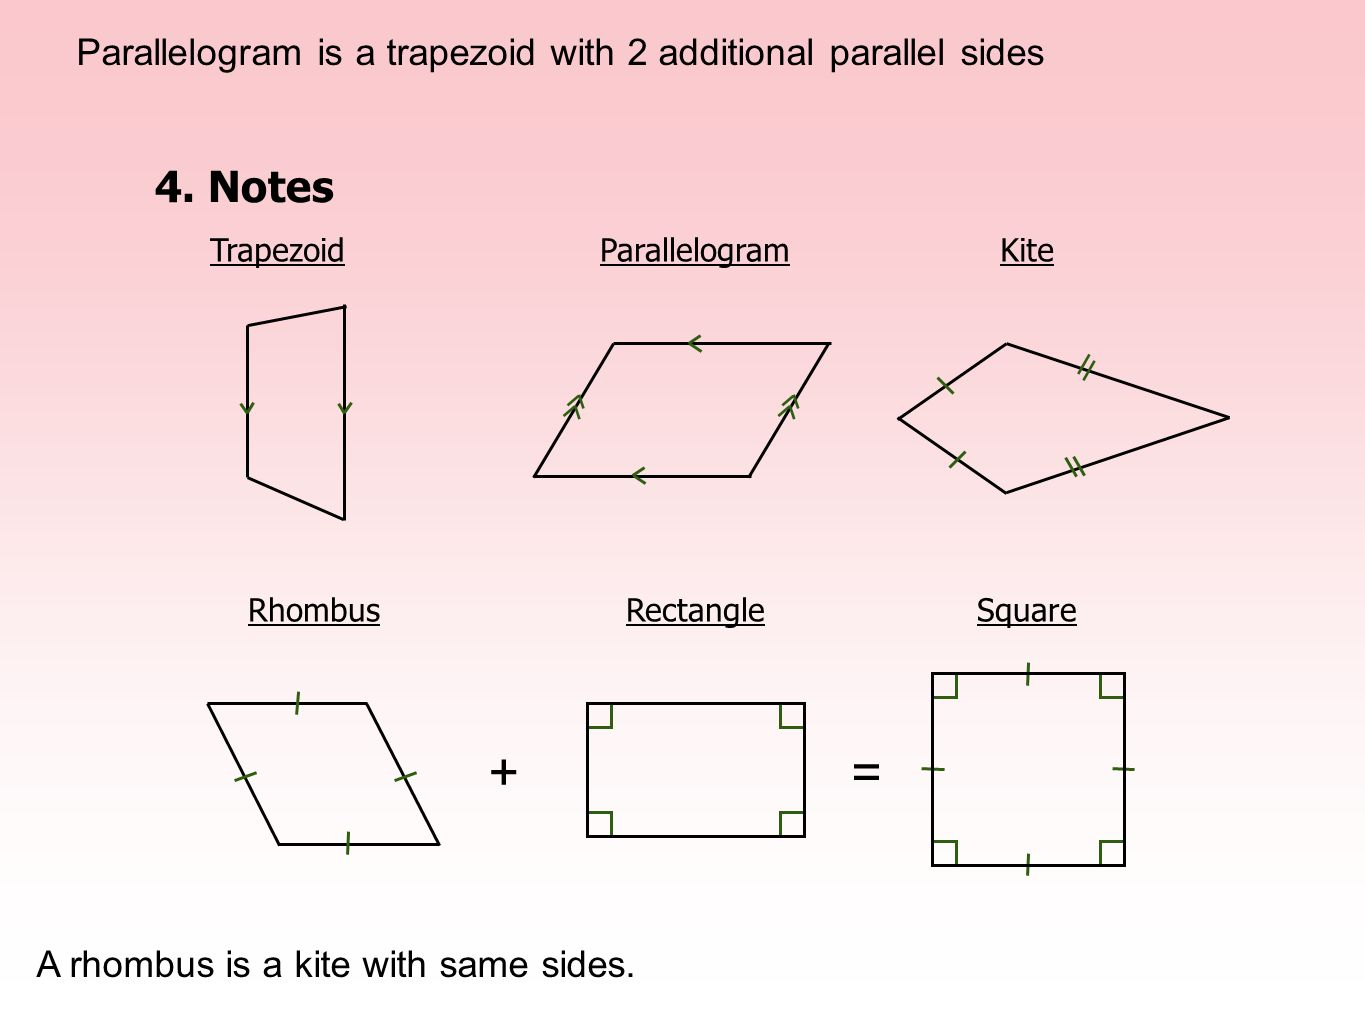 Parallelogram is a trapezoid with 2 additional parallel sides